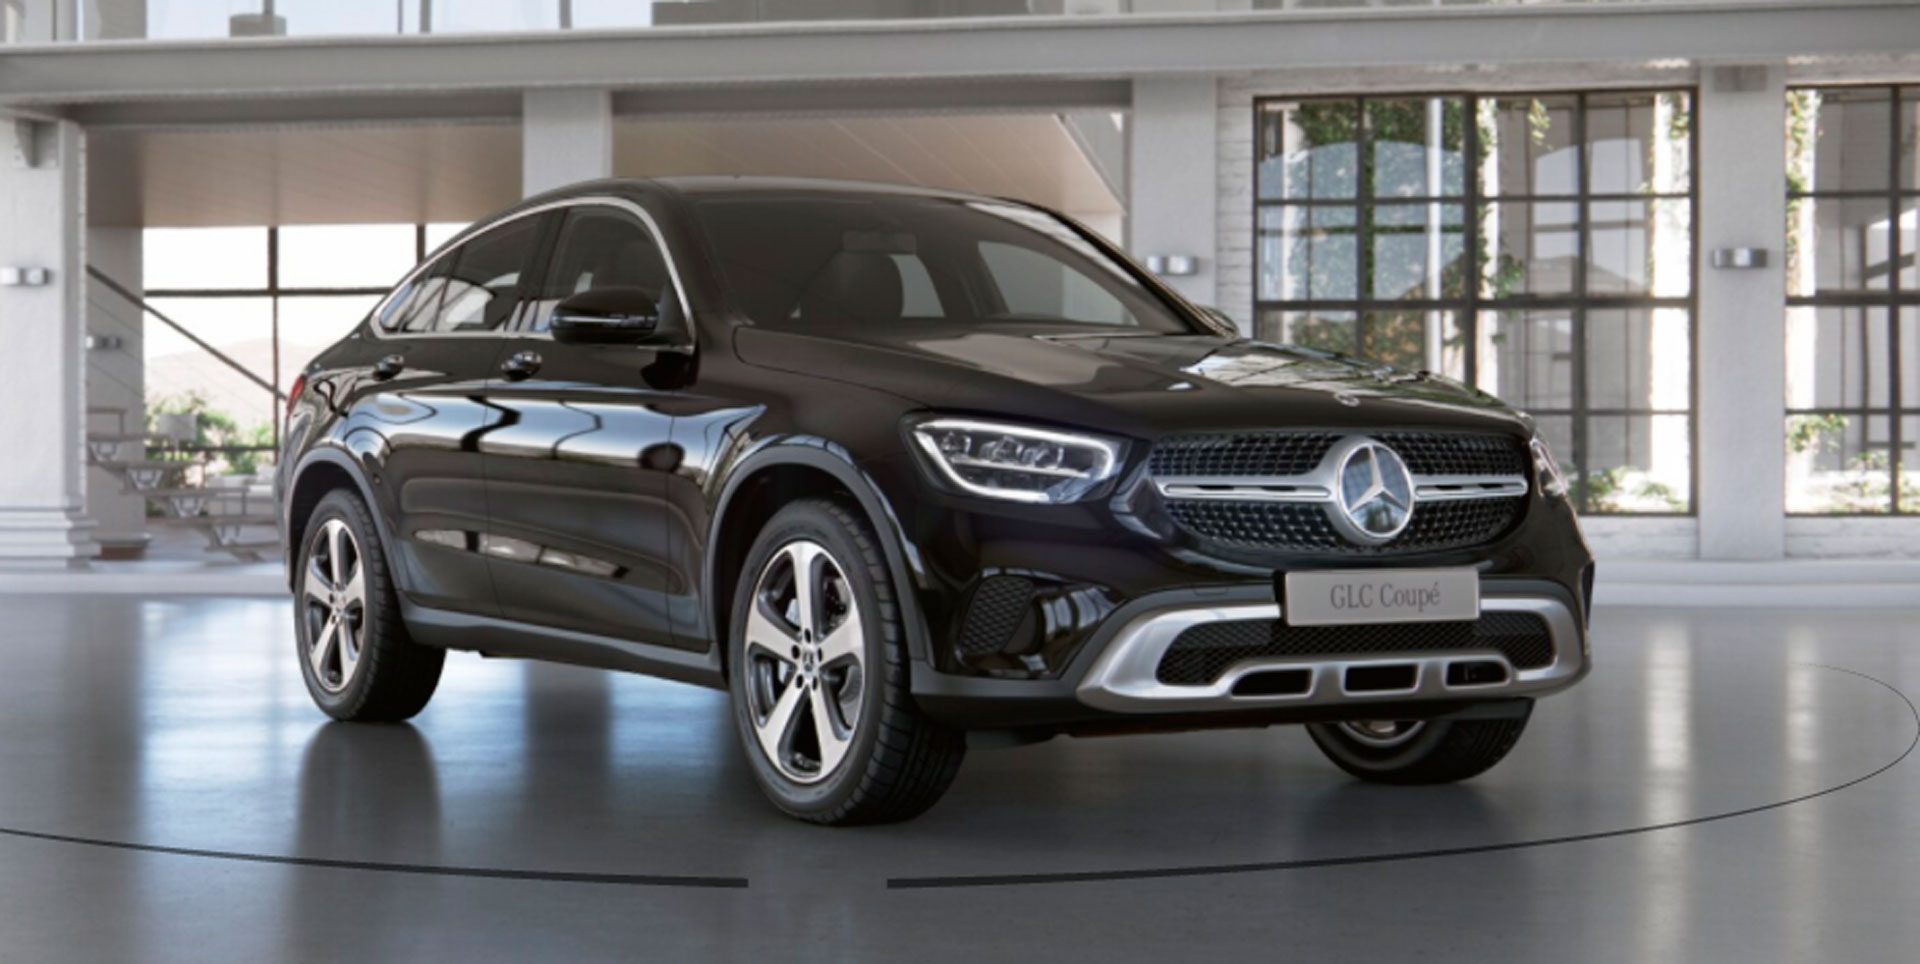 Mercedes-Benz GLC Coupe 0052600367